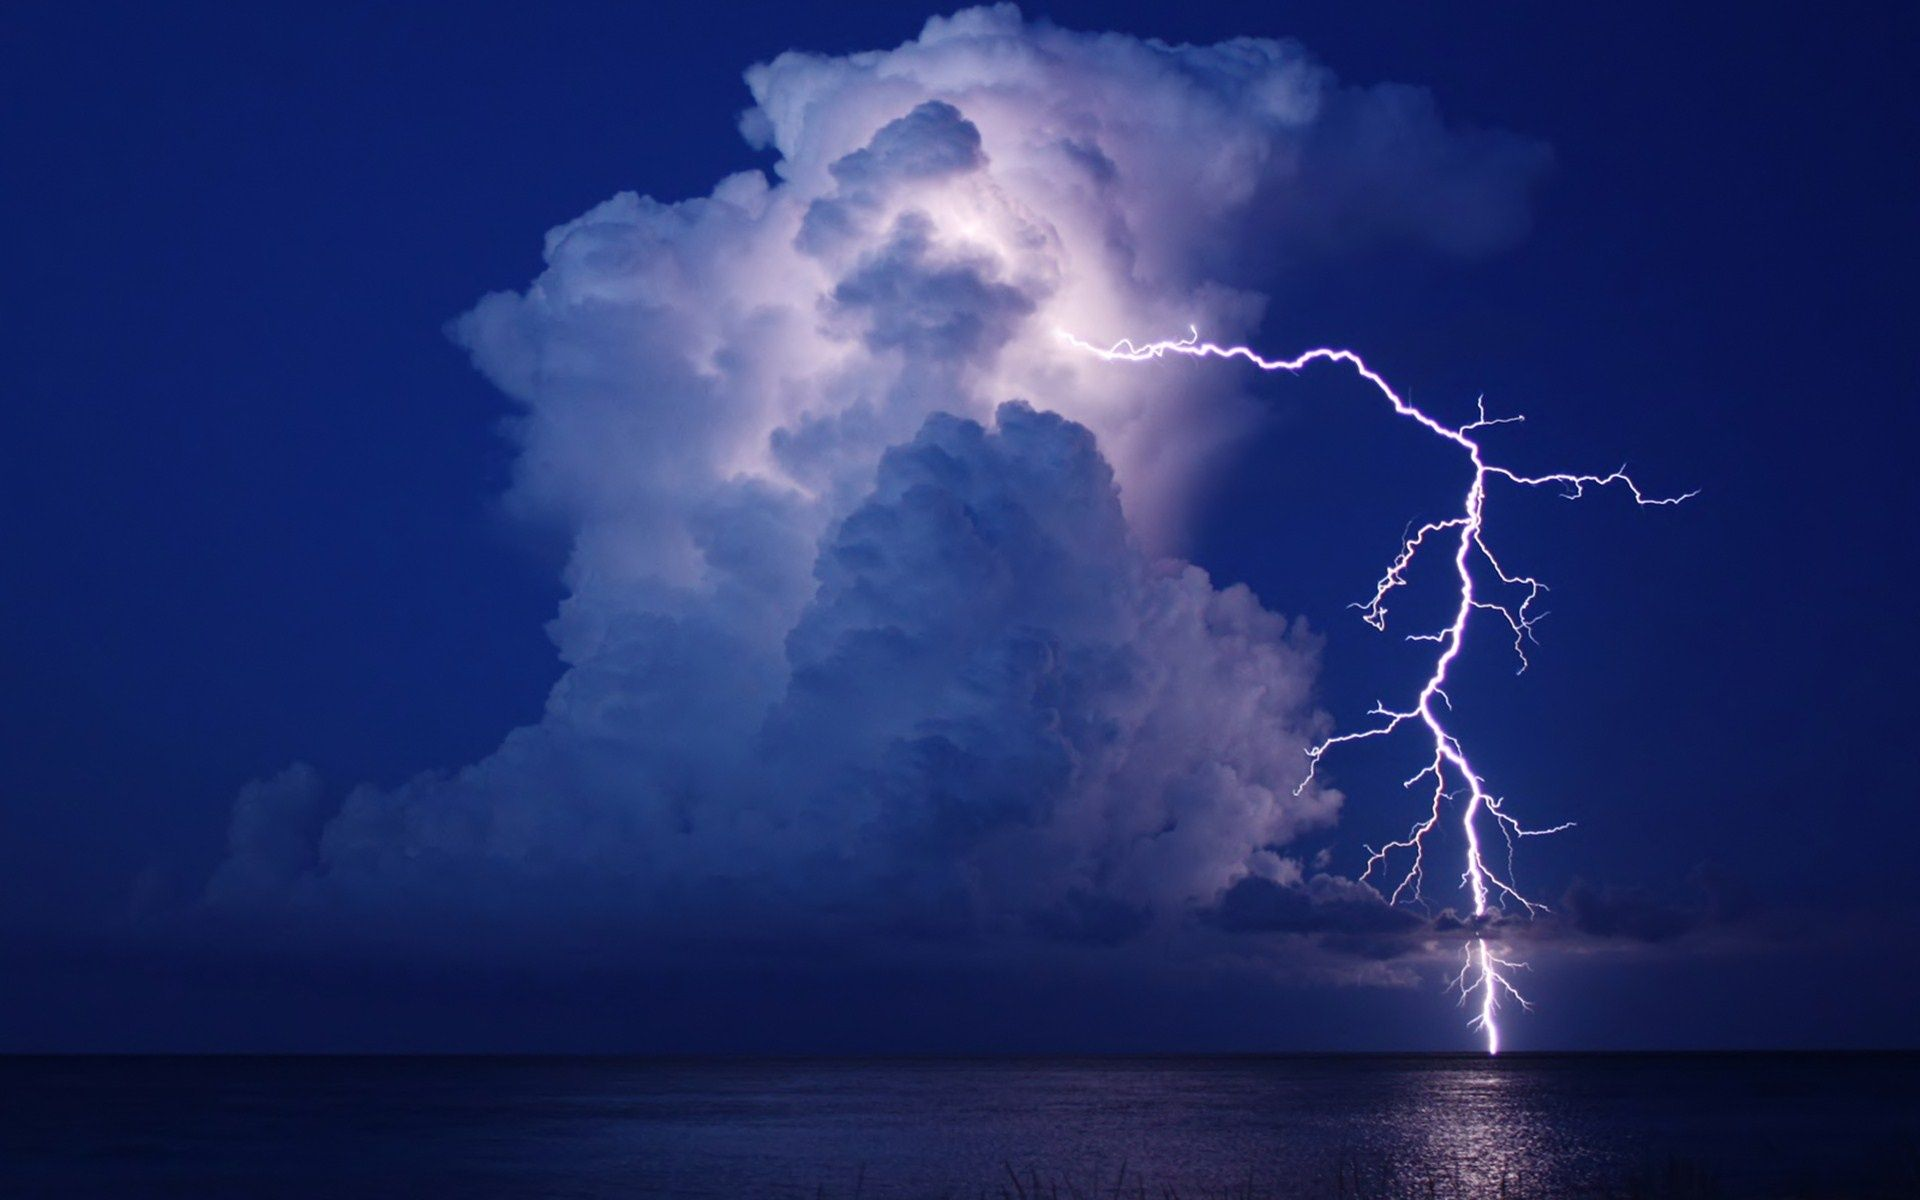 Thunderstorms And Lightning At Sea